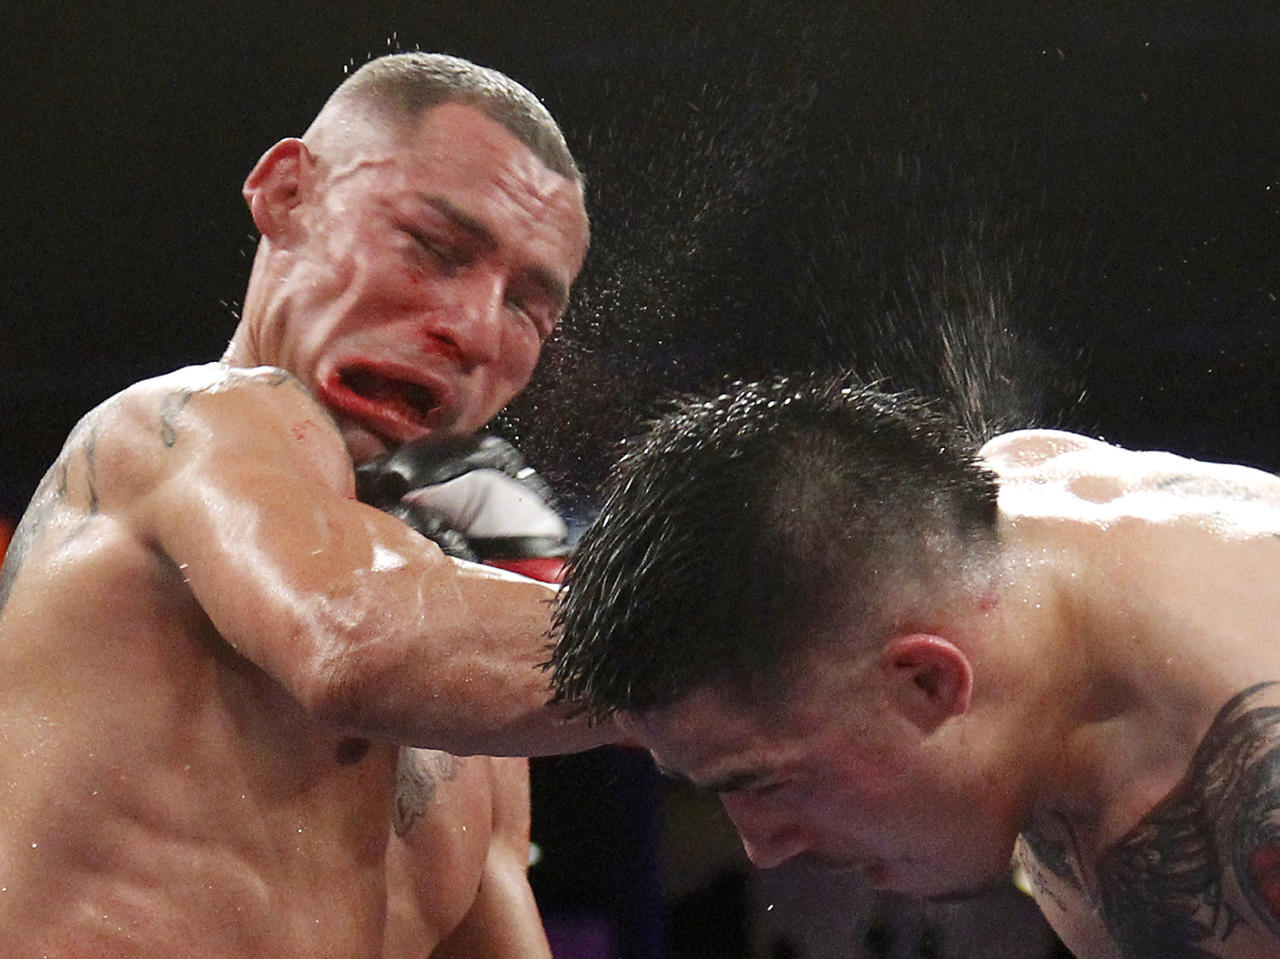 Brandon Rios (R) of the U.S. connects to the face with a punch on compatriot Mike Alvarado during the sixth round of their WBO Latino Super Lightweight Title boxing match in Carson, California October 13, 2012. Rios won by TKO in the seventh round. REUTERS/Danny Moloshok (UNITED STATES - Tags: SPORT BOXING TPX IMAGES OF THE DAY)